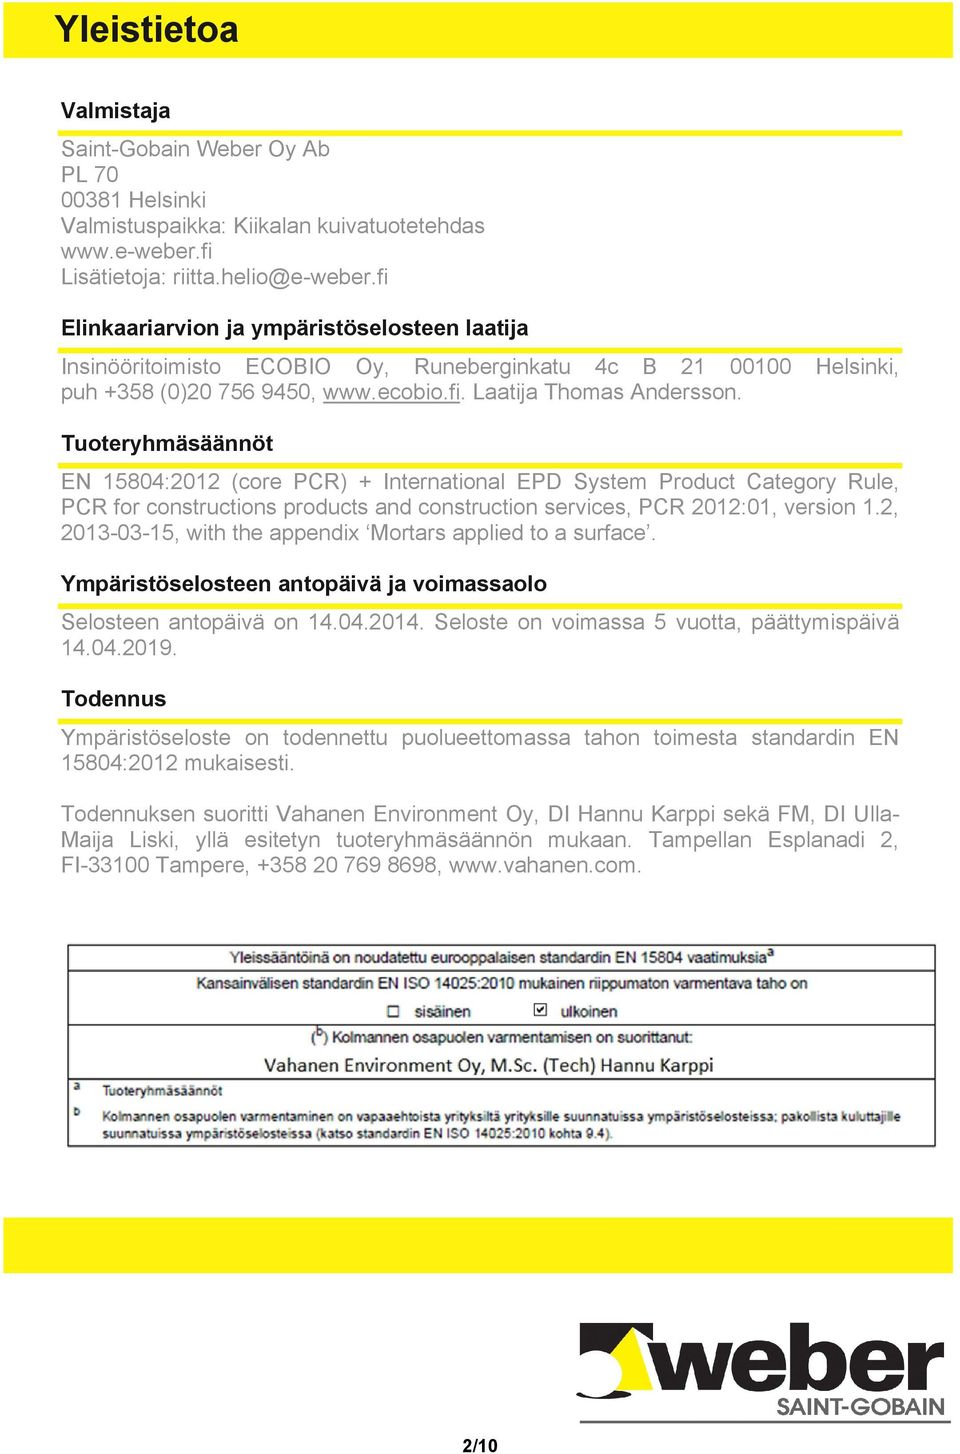 Tuoteryhmäsäännöt EN 15804:2012 (core PCR) + International EPD System Product Category Rule, PCR for constructions products and construction services, PCR 2012:01, version 1.